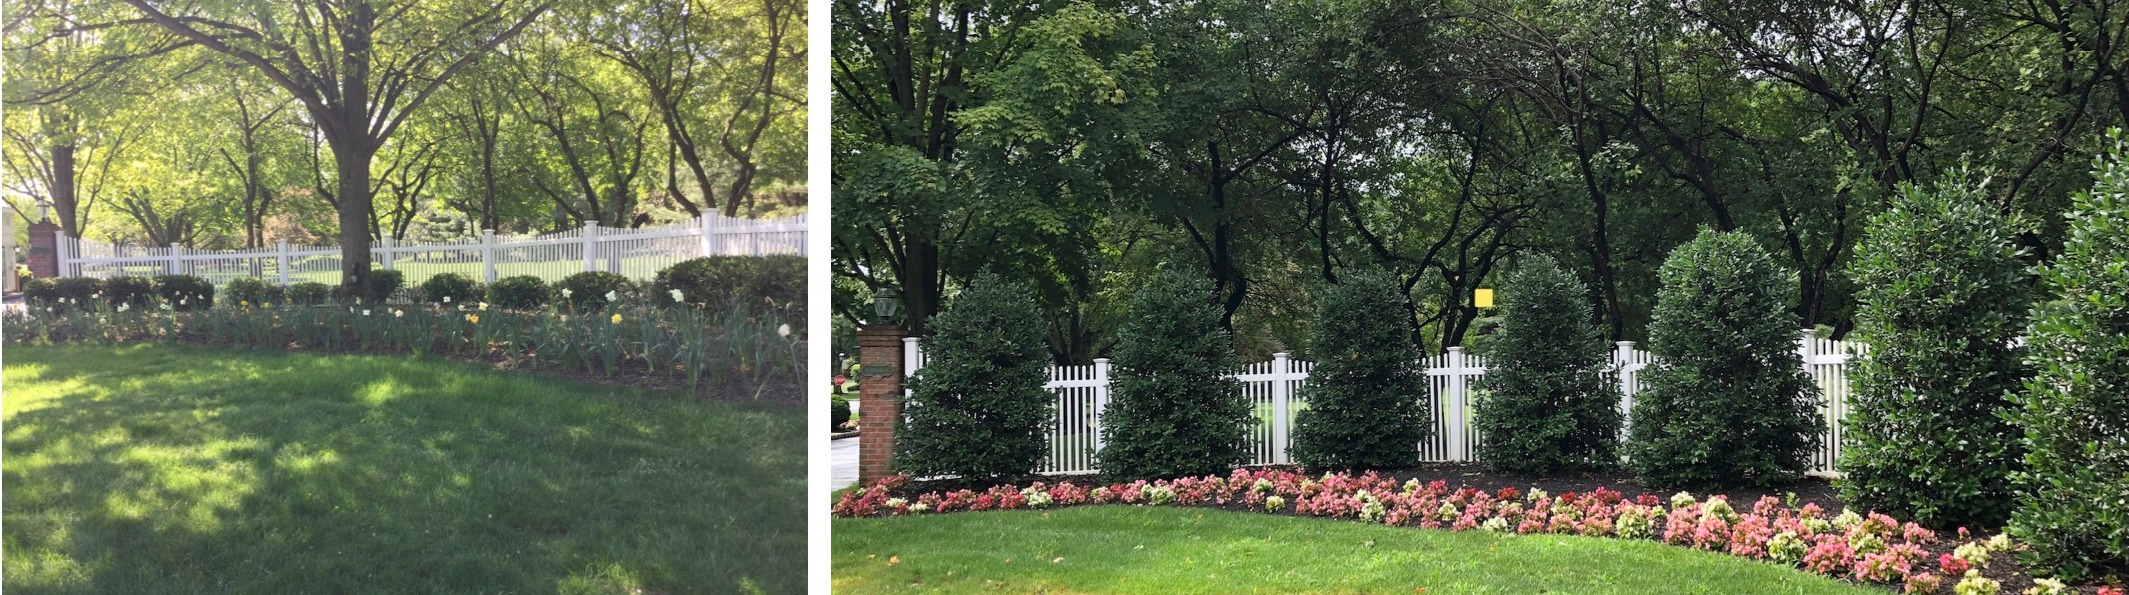 Entrance - Before & After